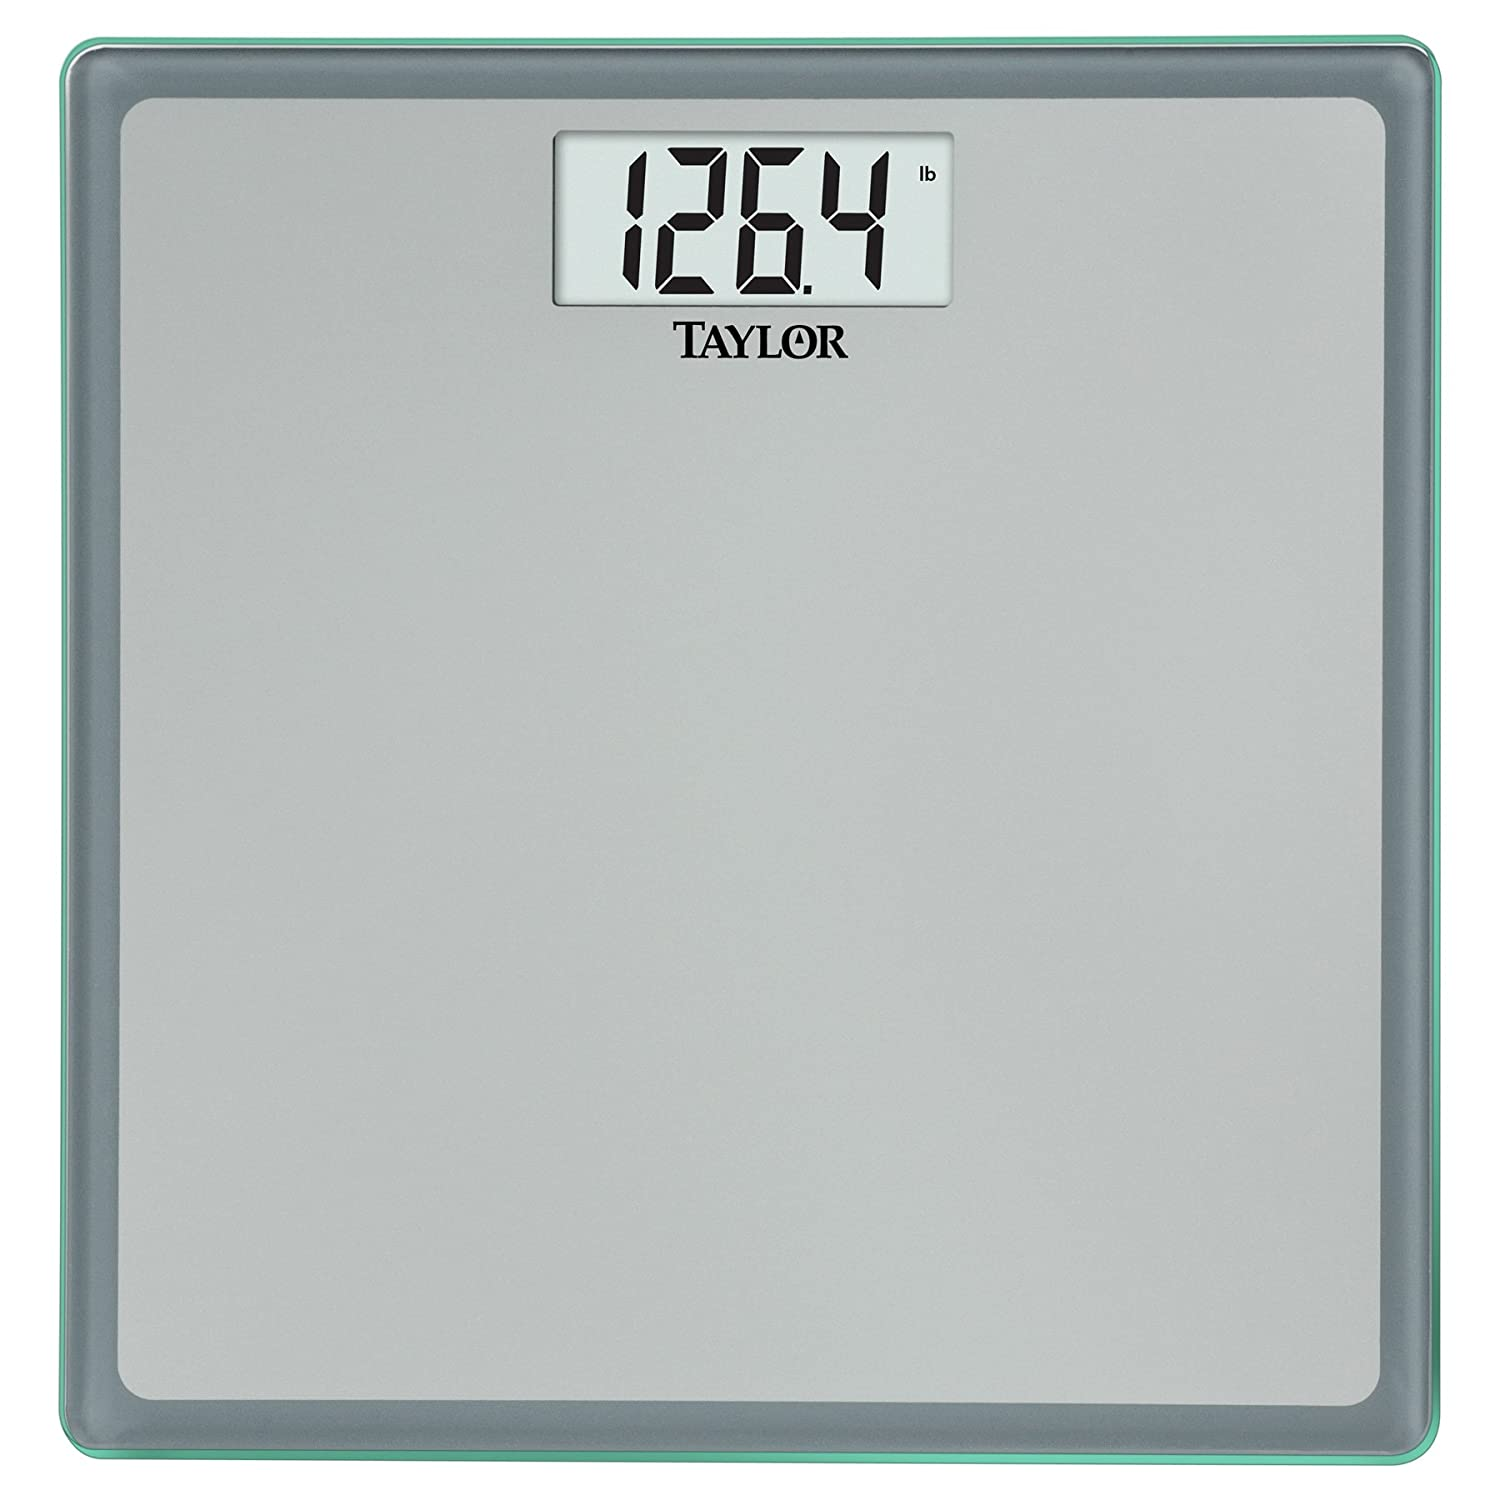 accents save scales scale steel clear with digital taylor and metallic product stainless bathroom glass